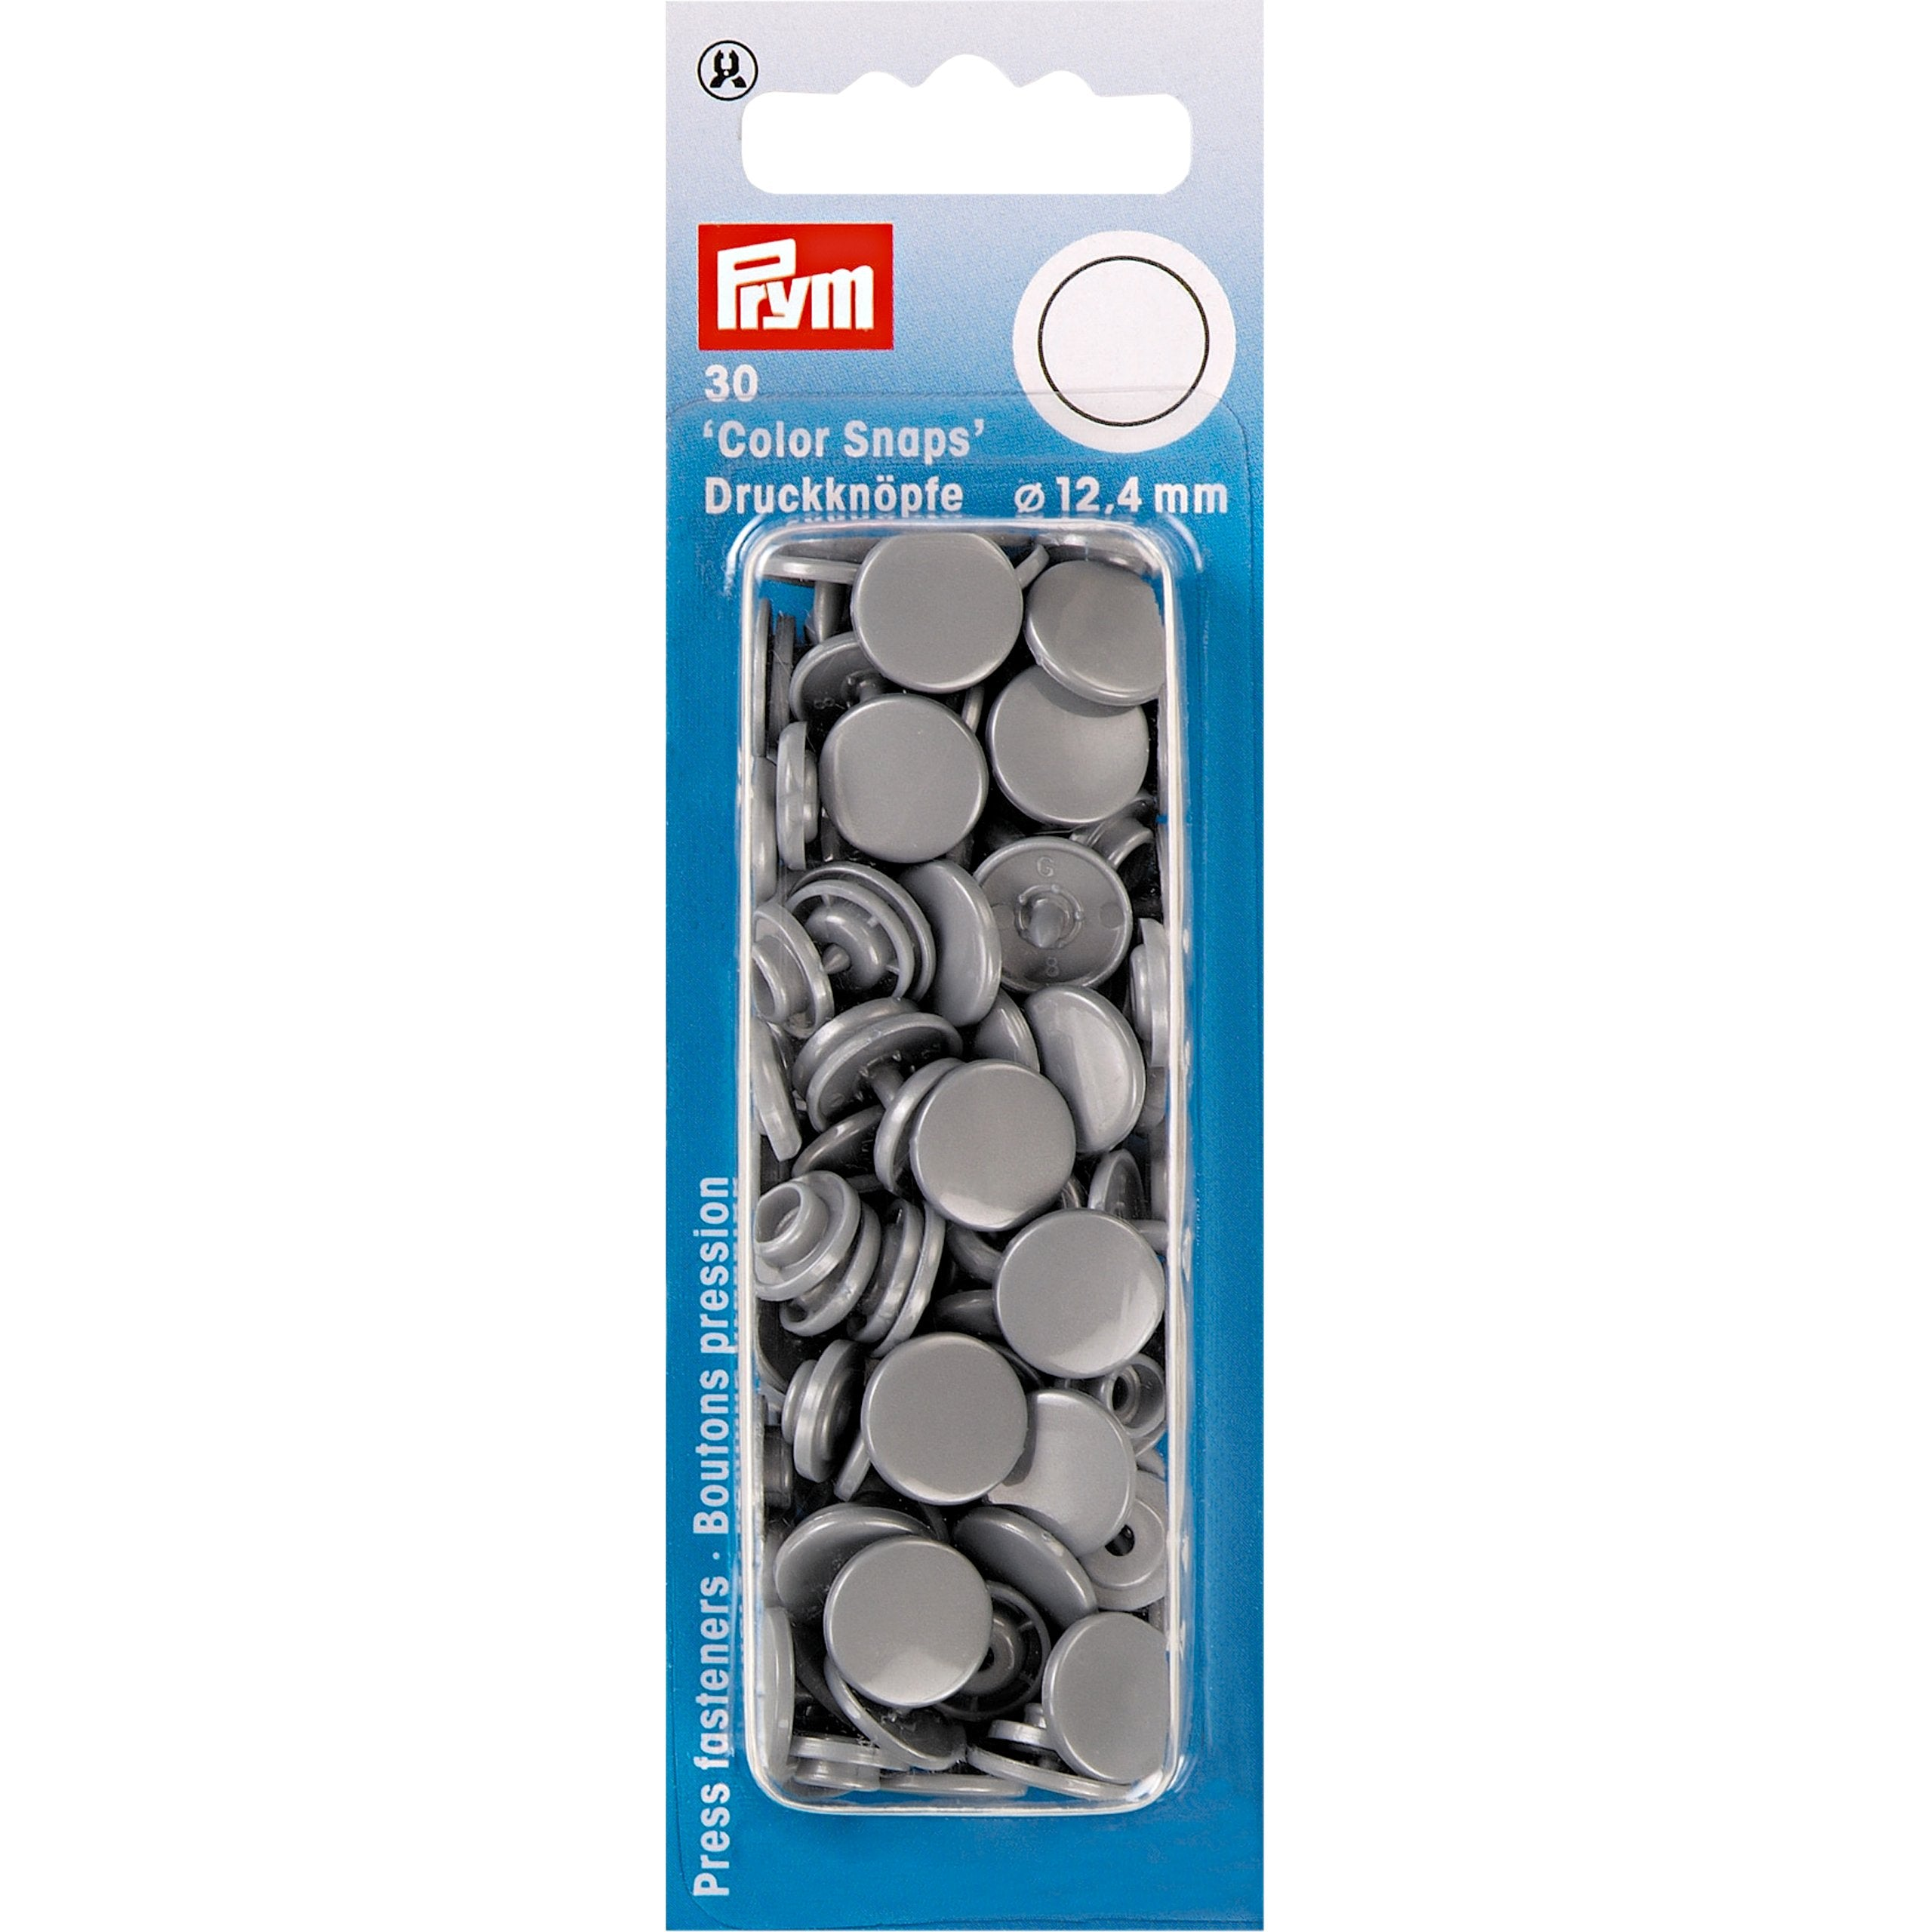 Prym Colour Snaps - Silver Grey - Packs of 30